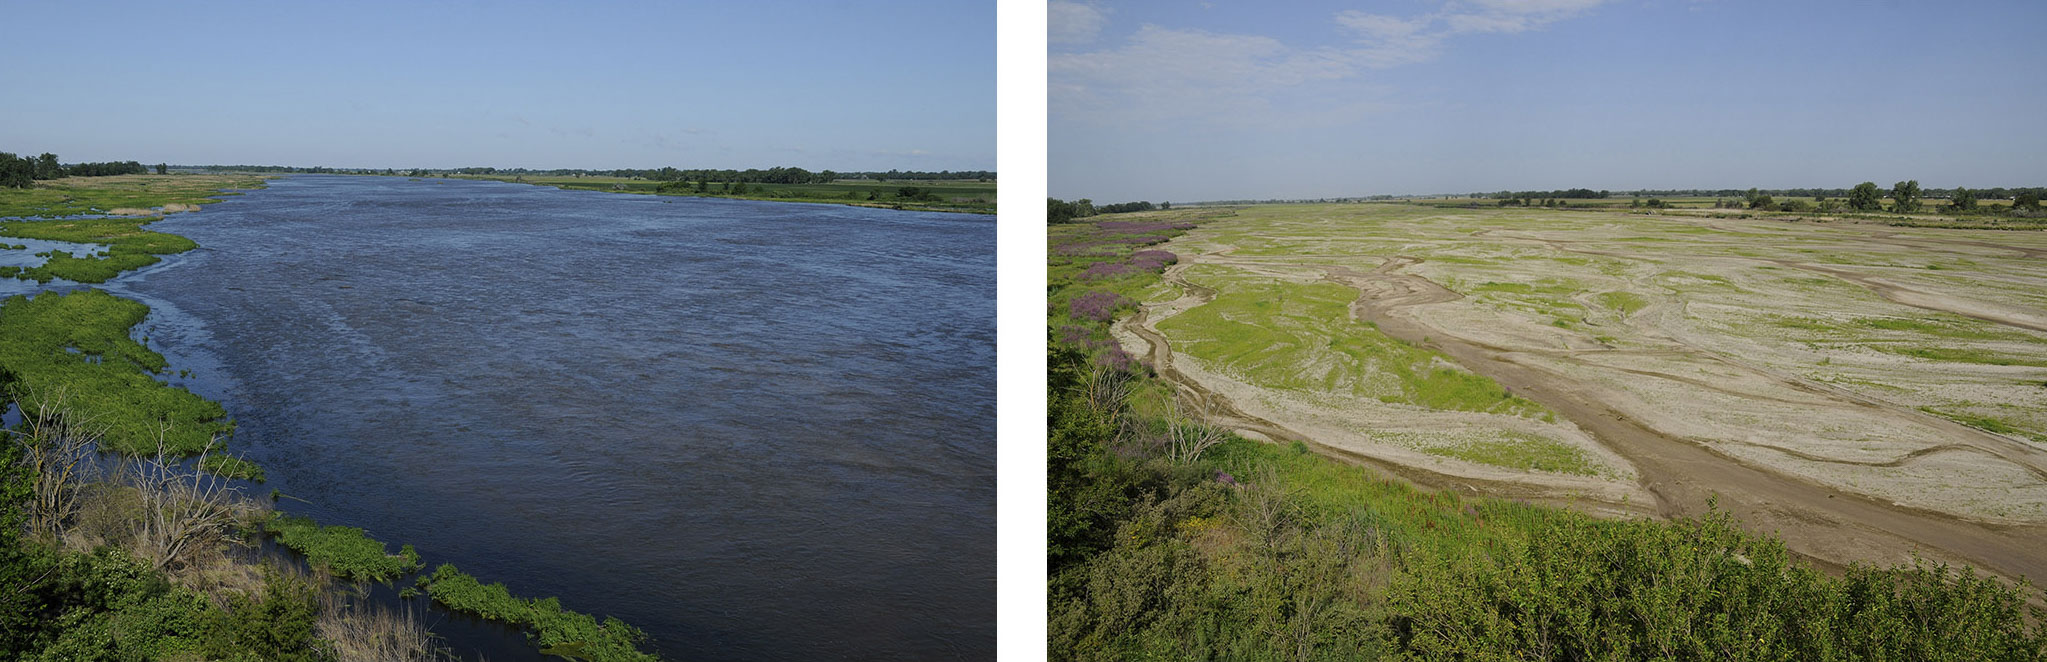 (left) A lot of rain created high waters in 2011 on the Platte River near Rowe Sanctuary, 20 miles west of Kearney. (right) The drought of 2012 on the Platte River near Rowe Sanctuary, 20 miles west of Kearney.(Michael Forsberg, Platte Basin Timelapse)